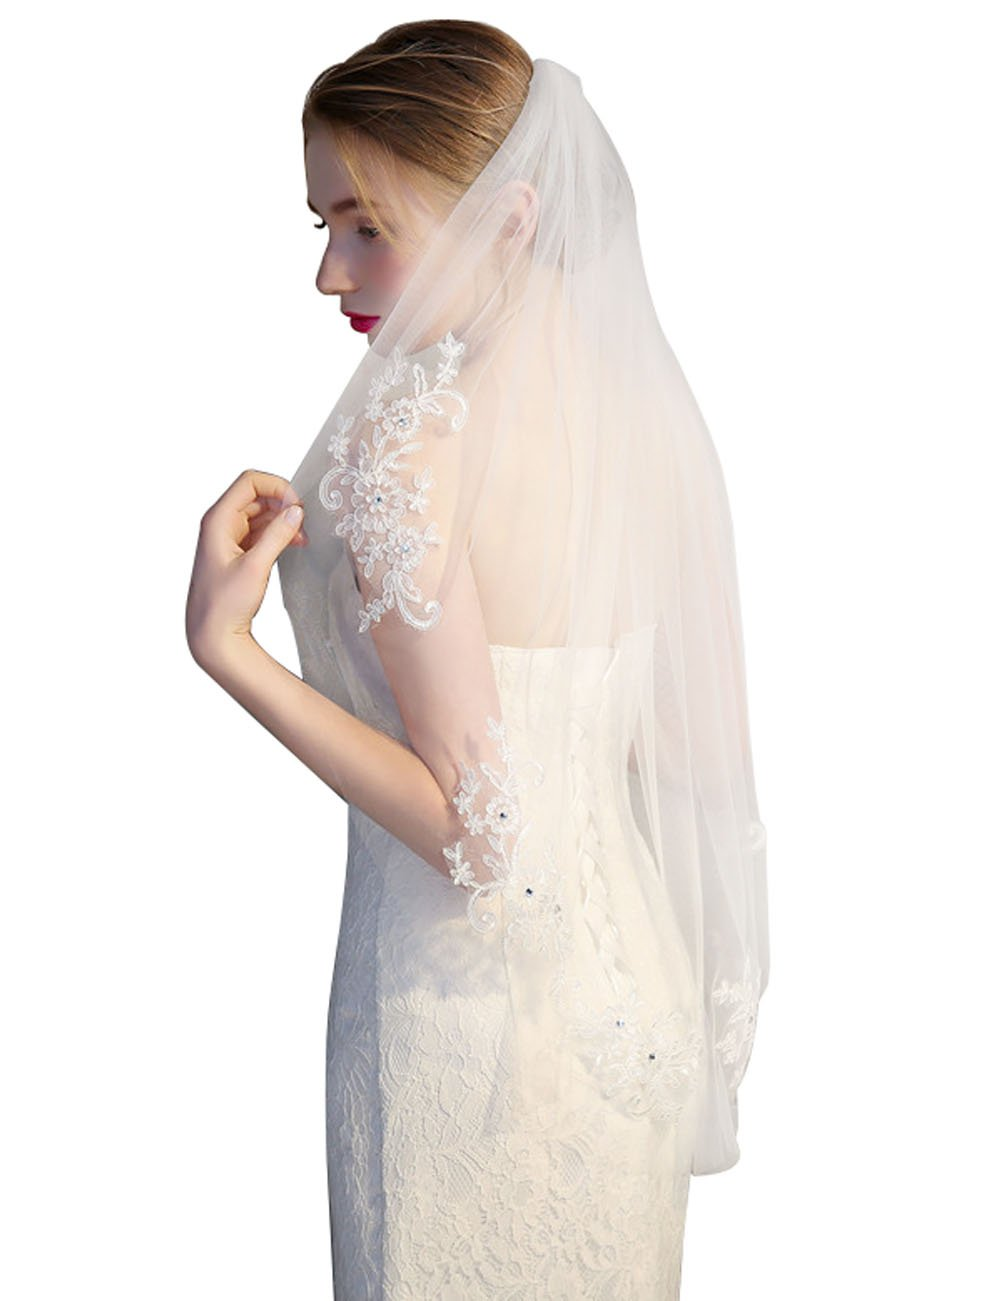 GRACIN Women's Lace Tulle Appliqued Edge Bridal Wedding Veil with Comb (One layers, White)